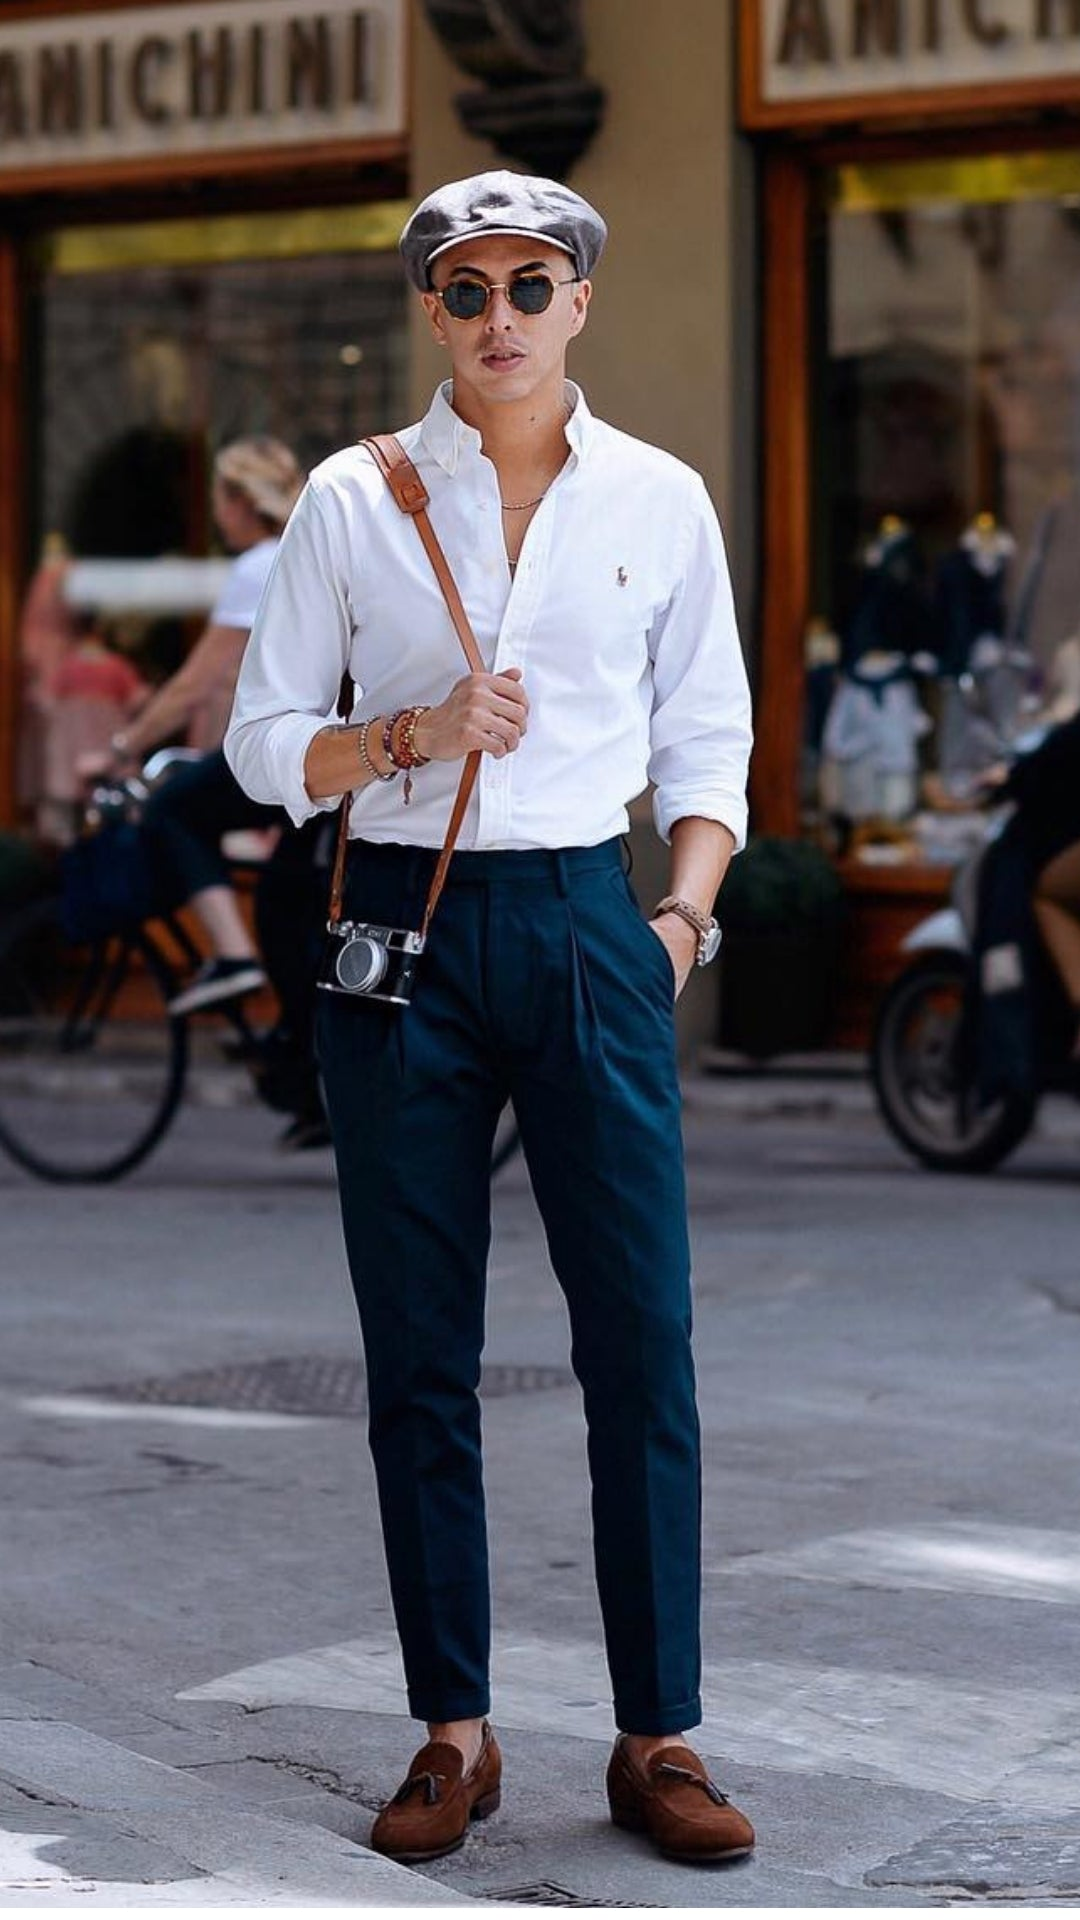 Simple outfits for men. #simple #outfits #mensfashion #streetstyle